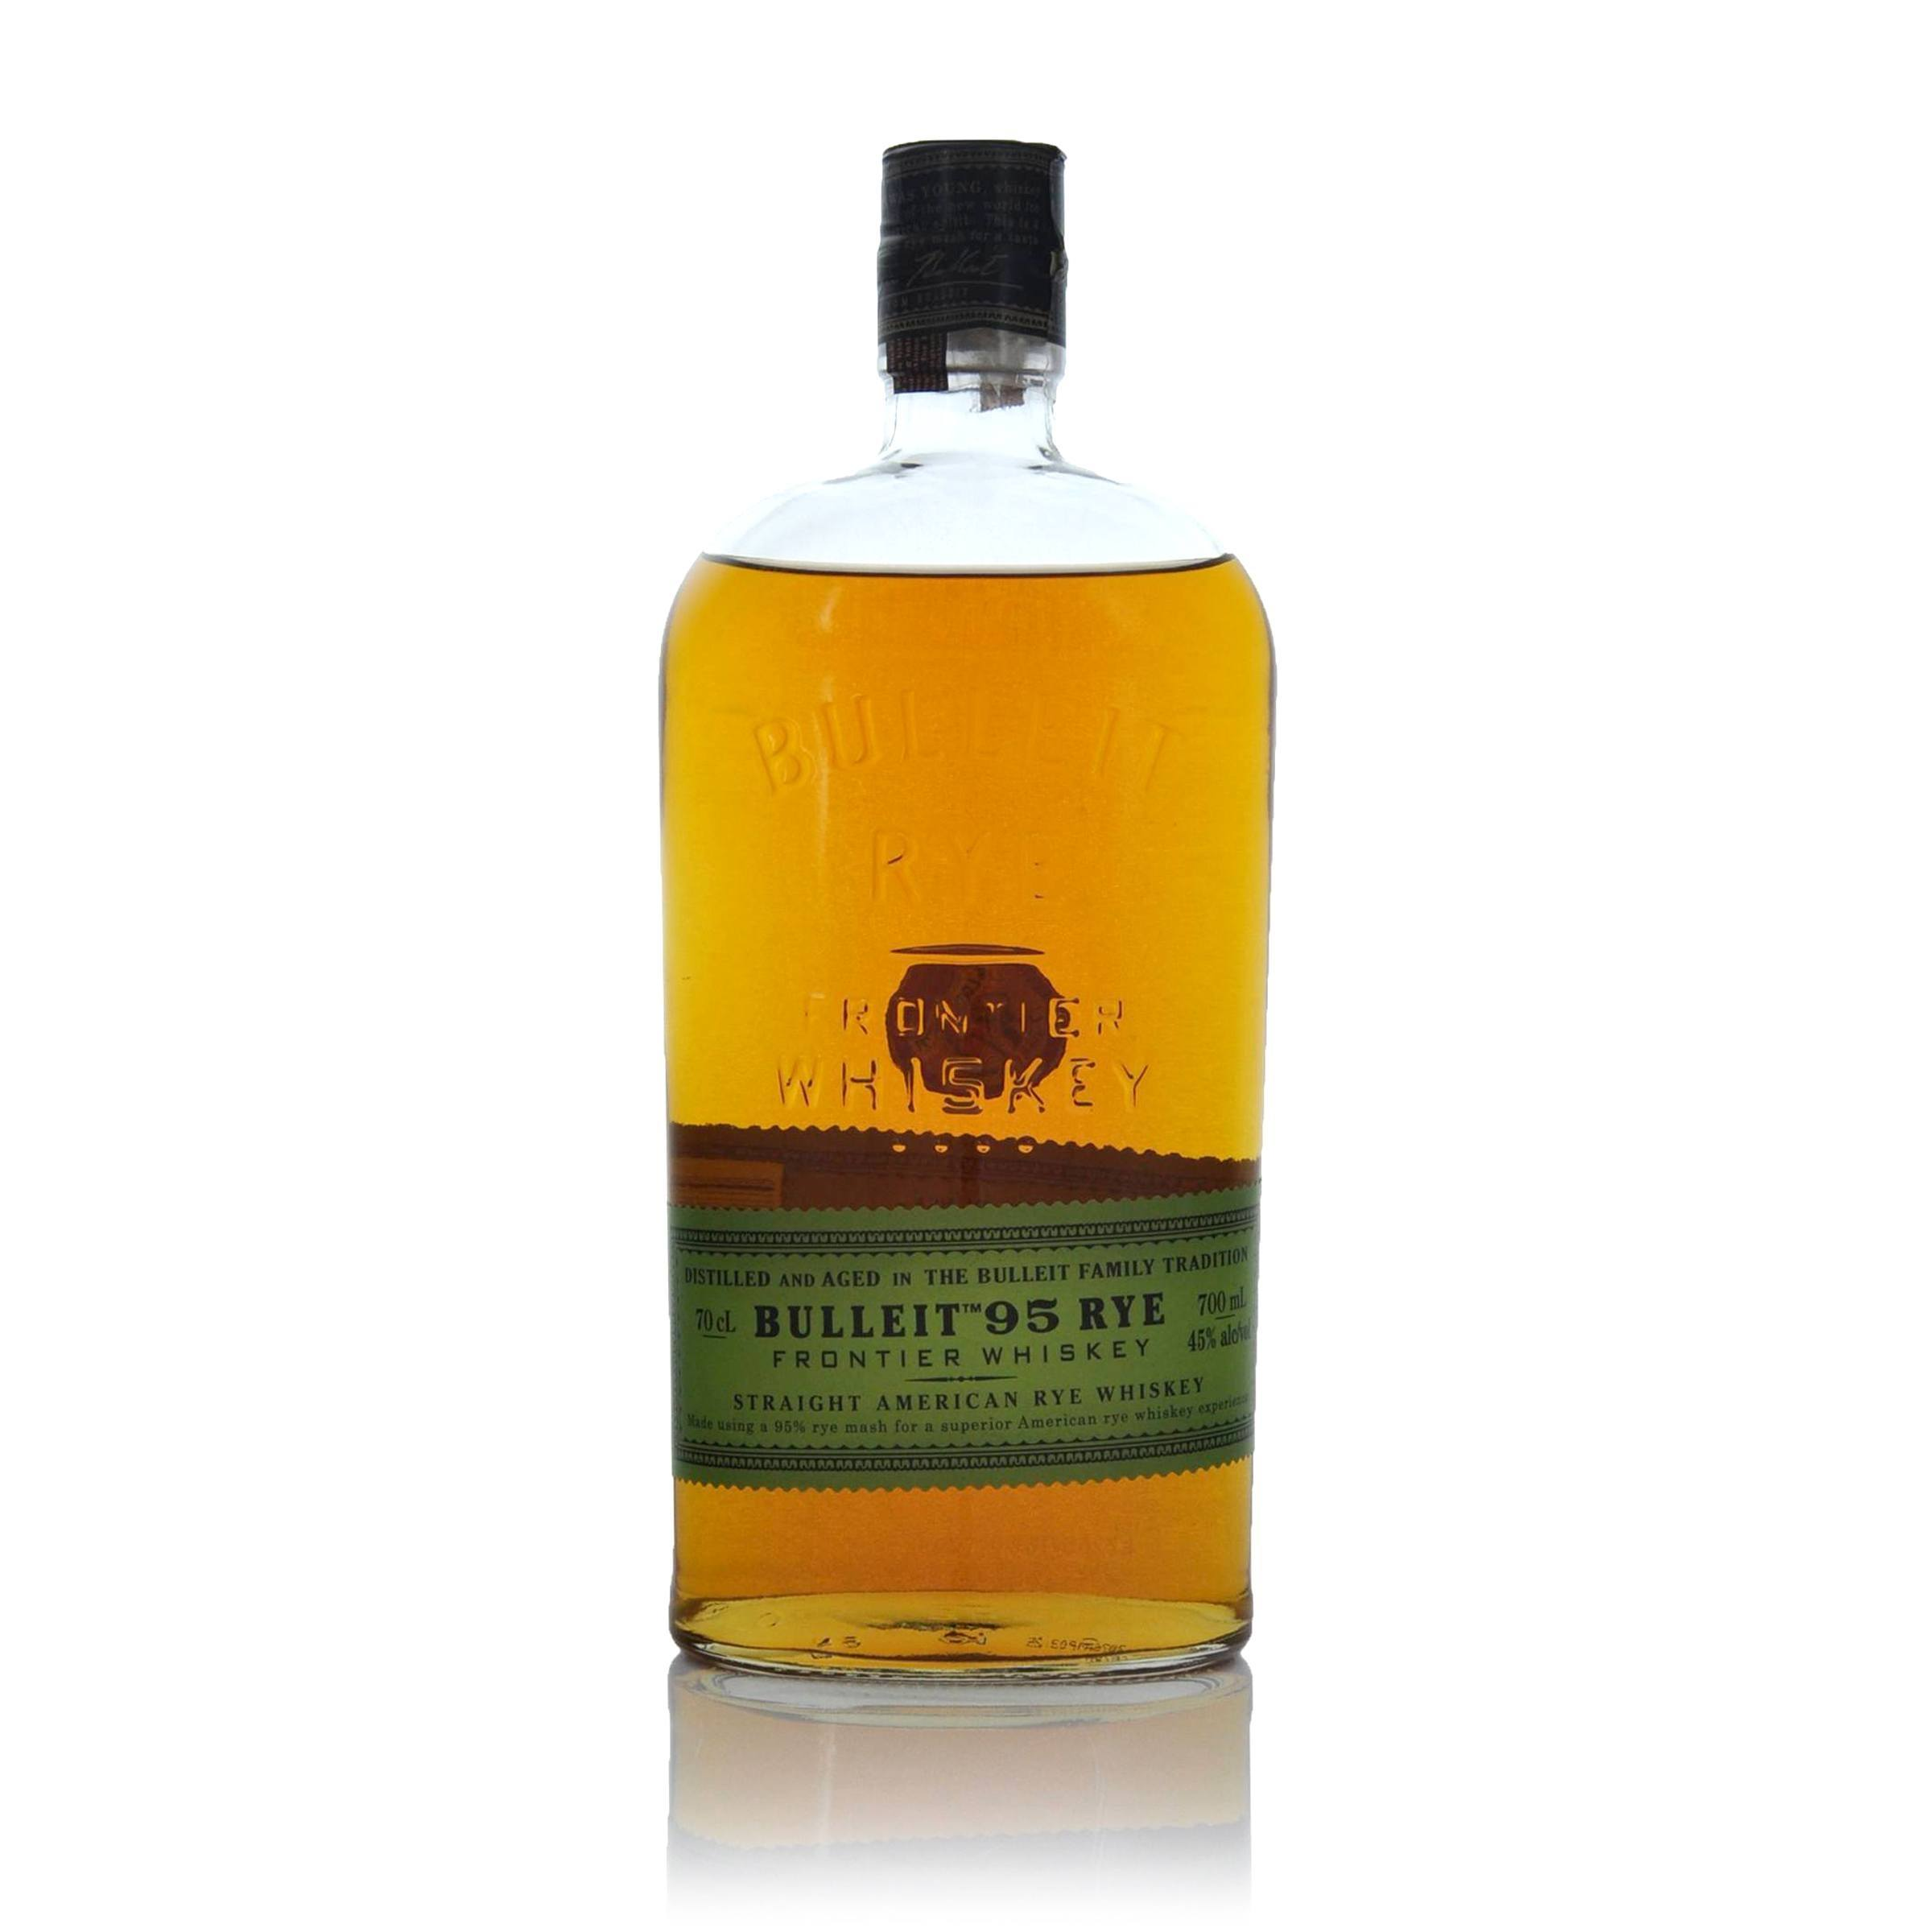 Bulleit Frontier Whiskey Small Batch 95 Rye 1